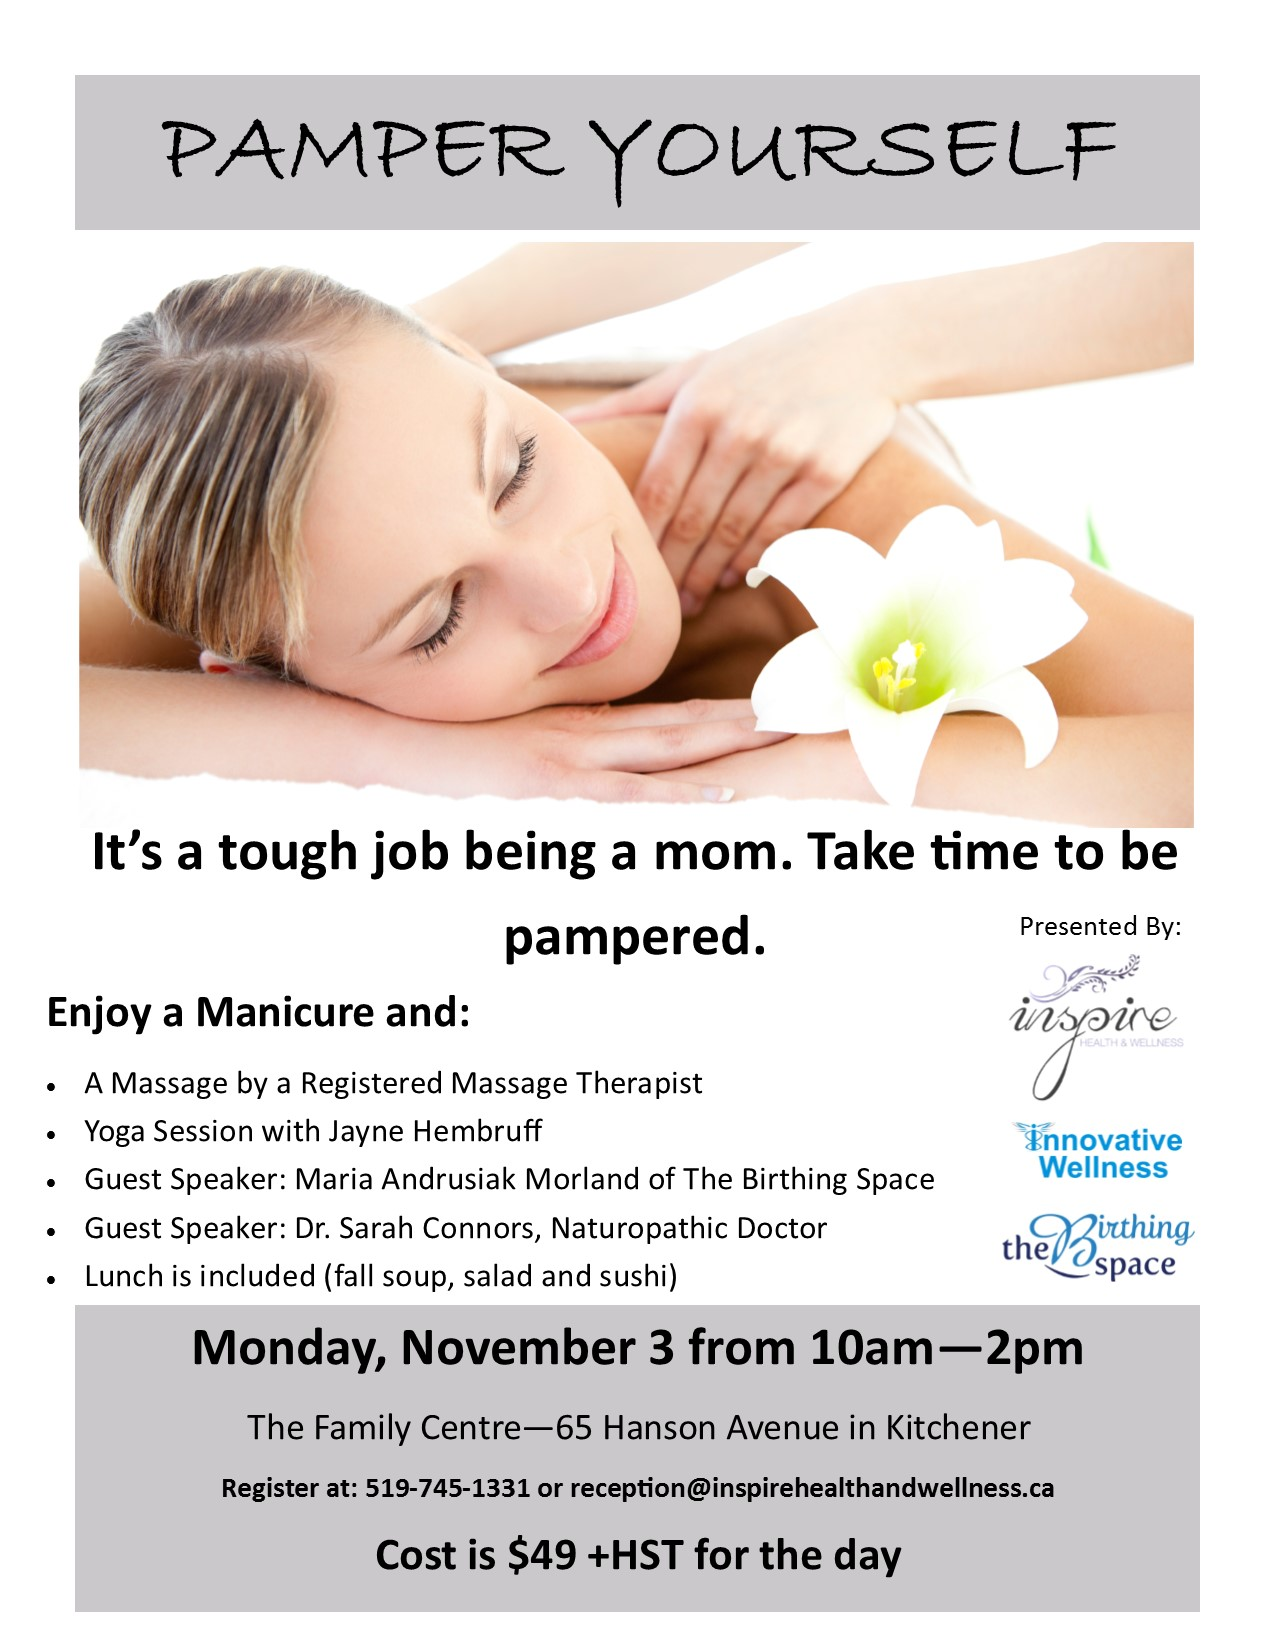 Pamper Yourself Poster Mon Nov 3, 2014